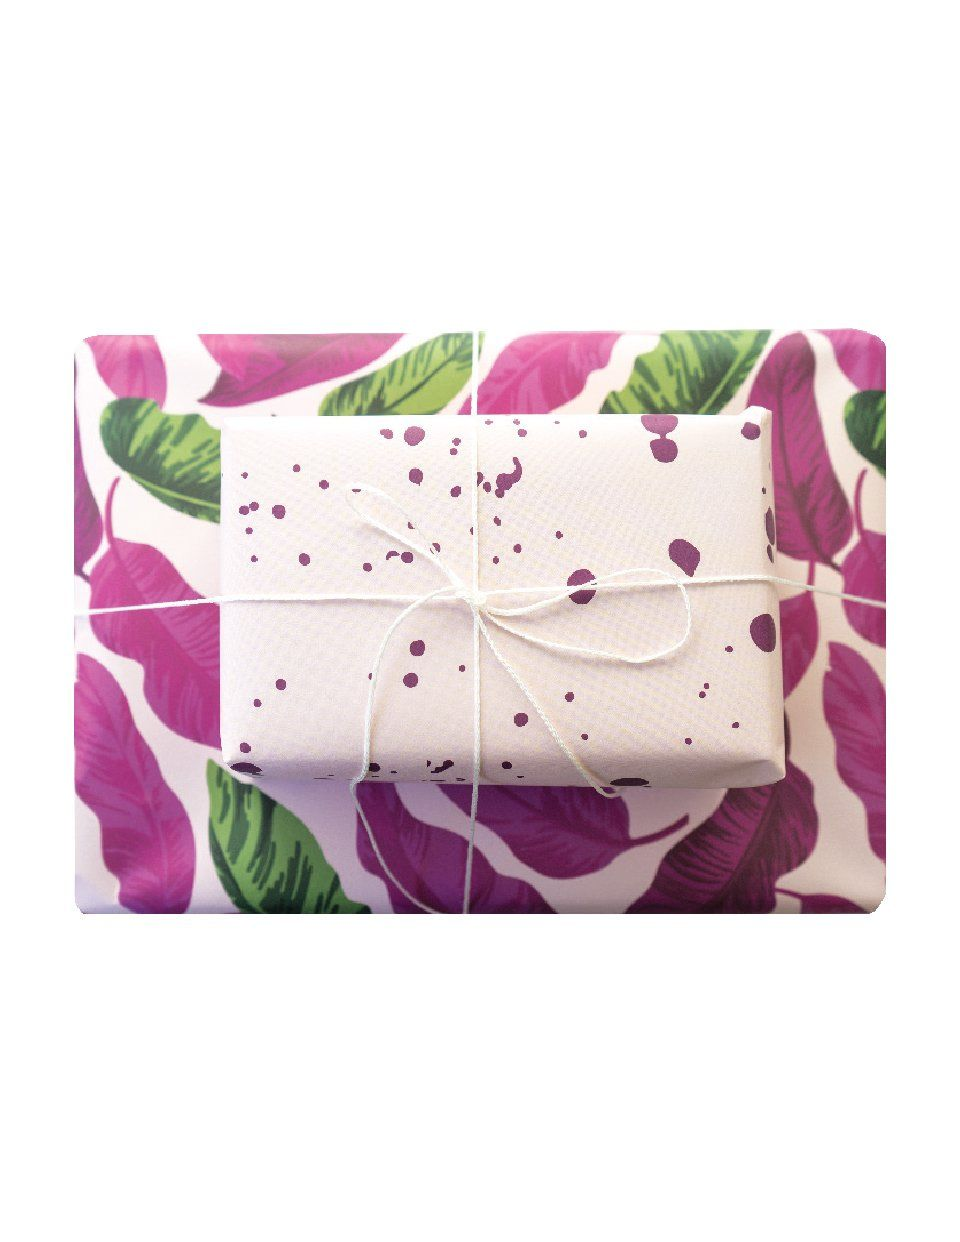 Double Sided Wrapping Paper 3PK: Tropical Paint | Blushing Confetti